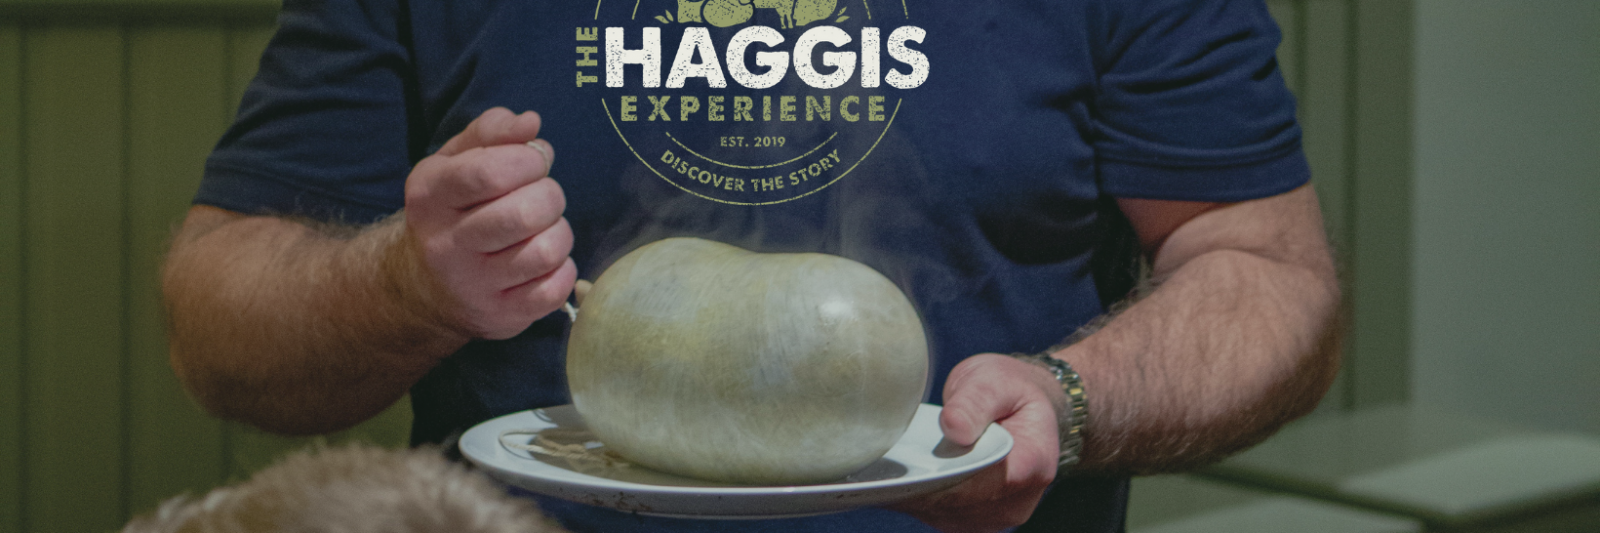 Traditional Scottish haggis on a plate